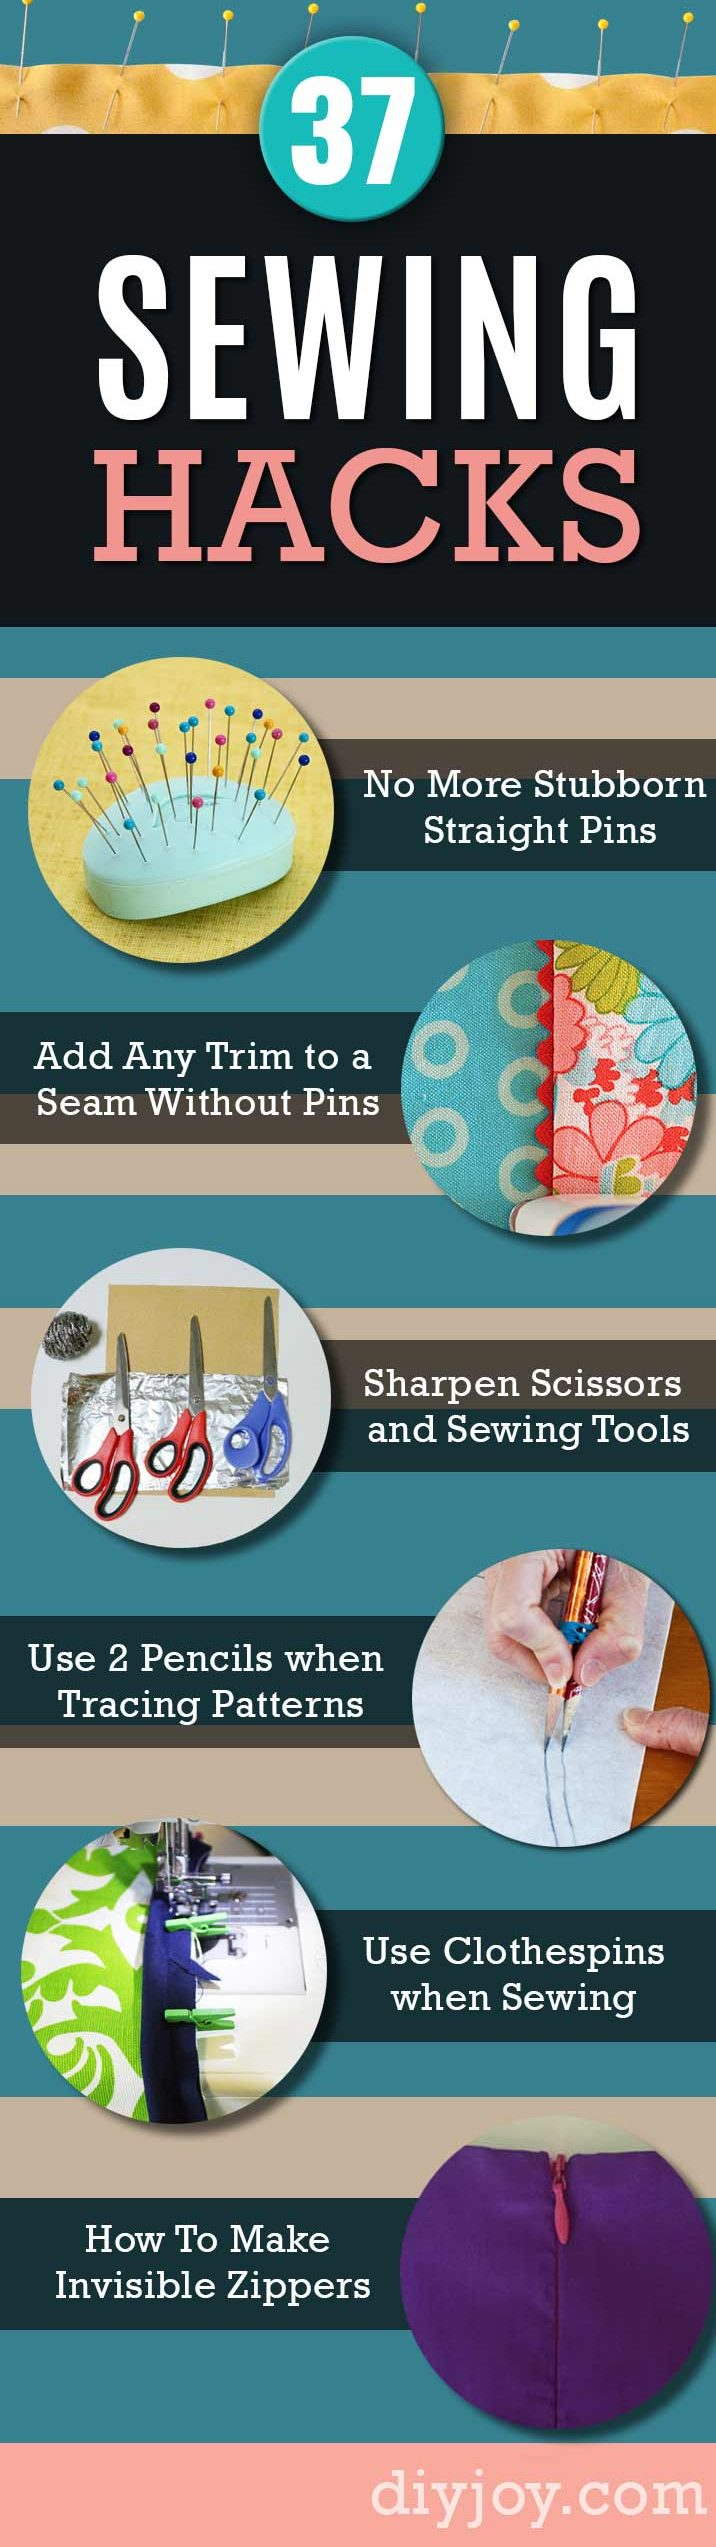 Sewing Hacks | Best Tips and Tricks for Sewing Patterns, Projects, Machines, Hand Sewn Items. Clever Ideas for Beginners and Even Experts | Use Mini Clothespins when Sewing Bindings and Piping |